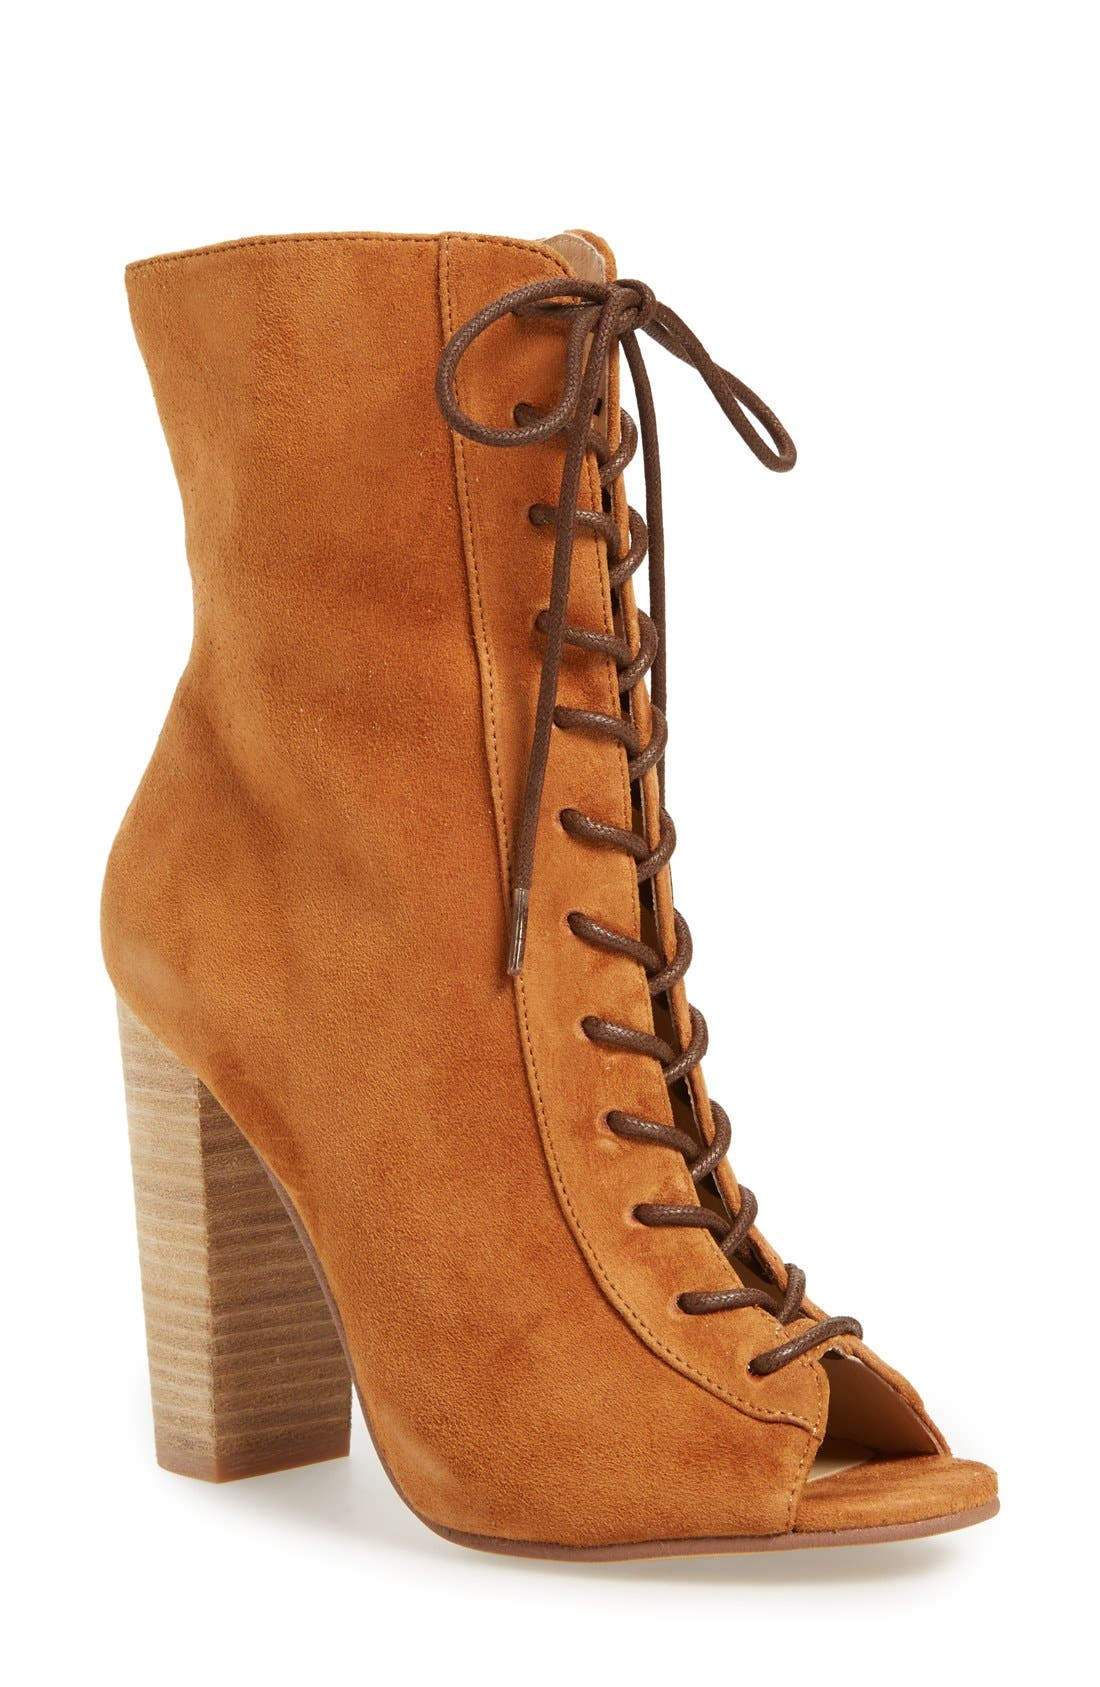 Alternate Image 1 Selected - Kristin Cavallari 'Lawless' Lace-Up Bootie (Women)